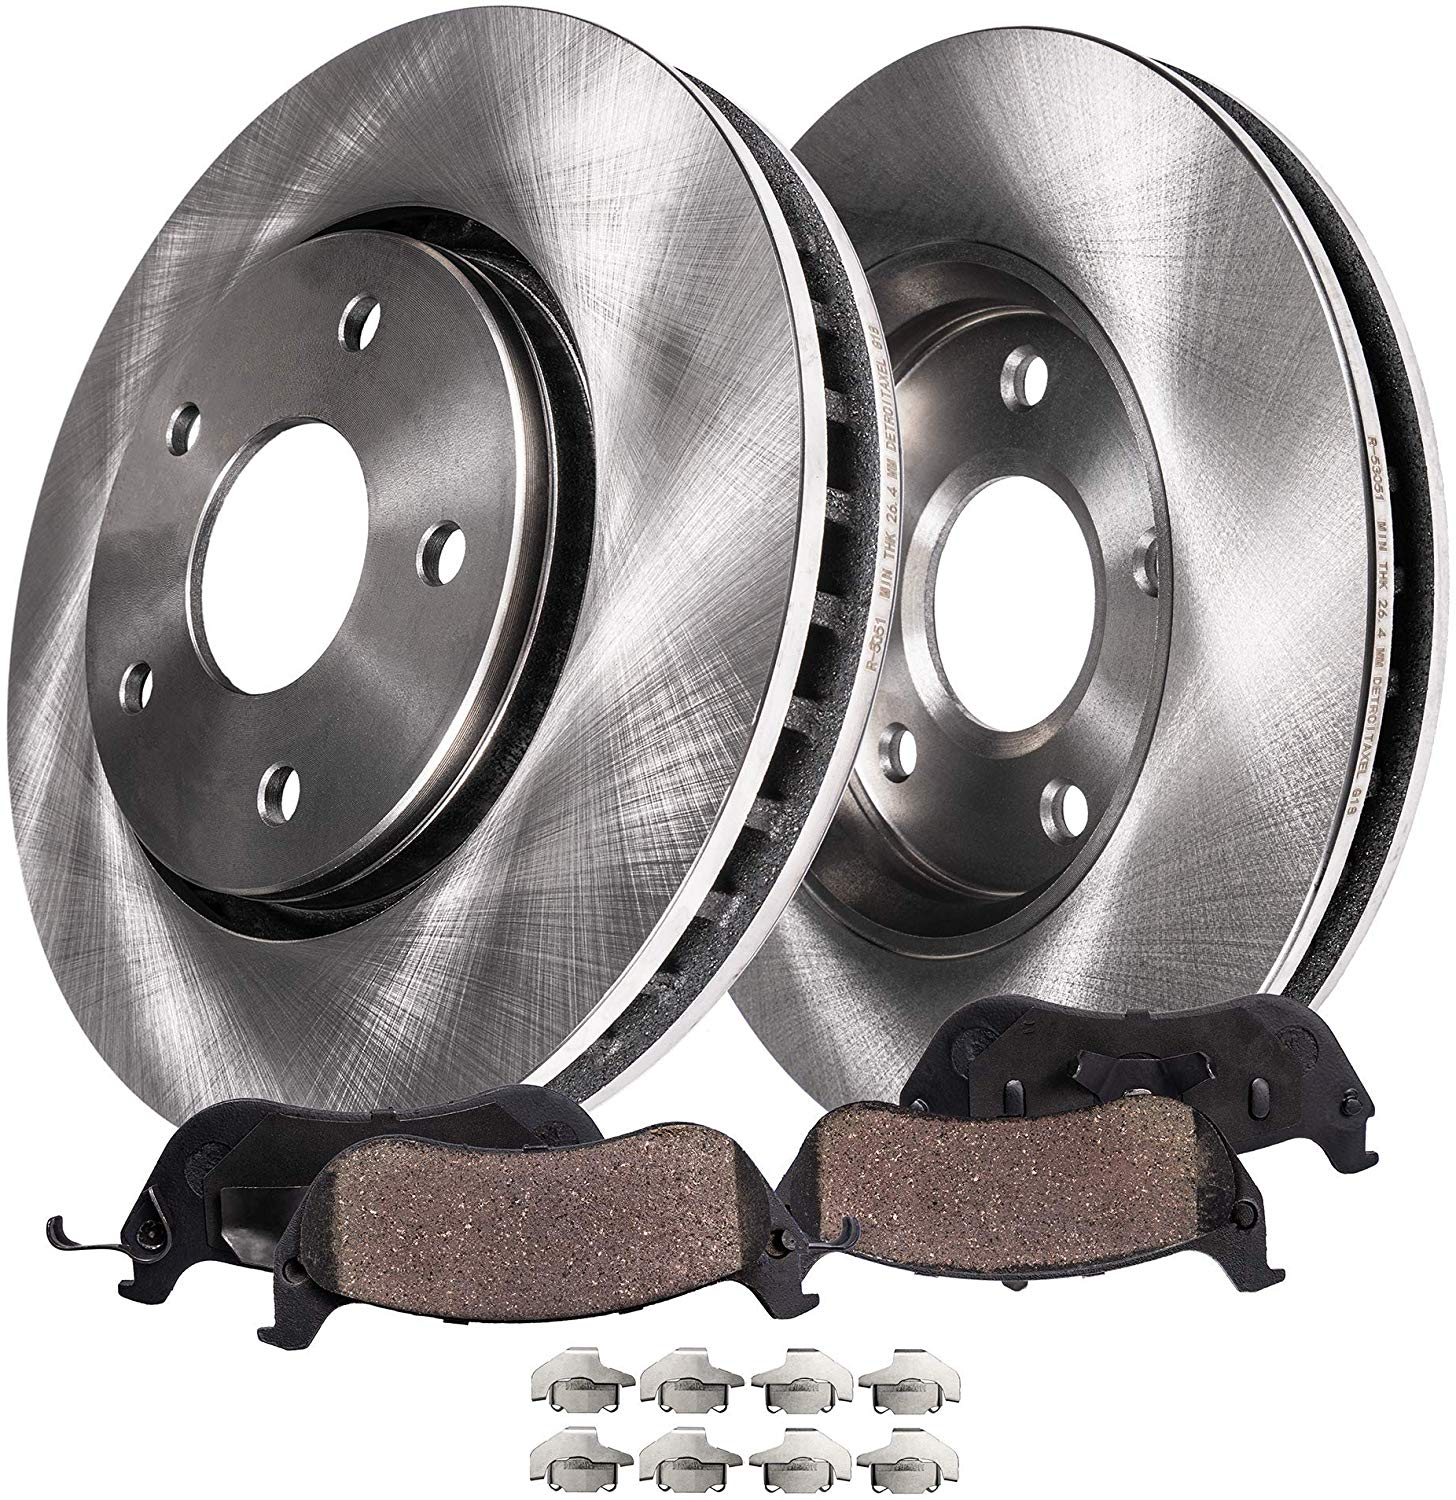 DualBore Sizes 1-3//8 At The Front /& 1 At The Rear Right Top MACs Auto Parts 48-12994 Pickup Truck Front Brake Wheel Cylinder